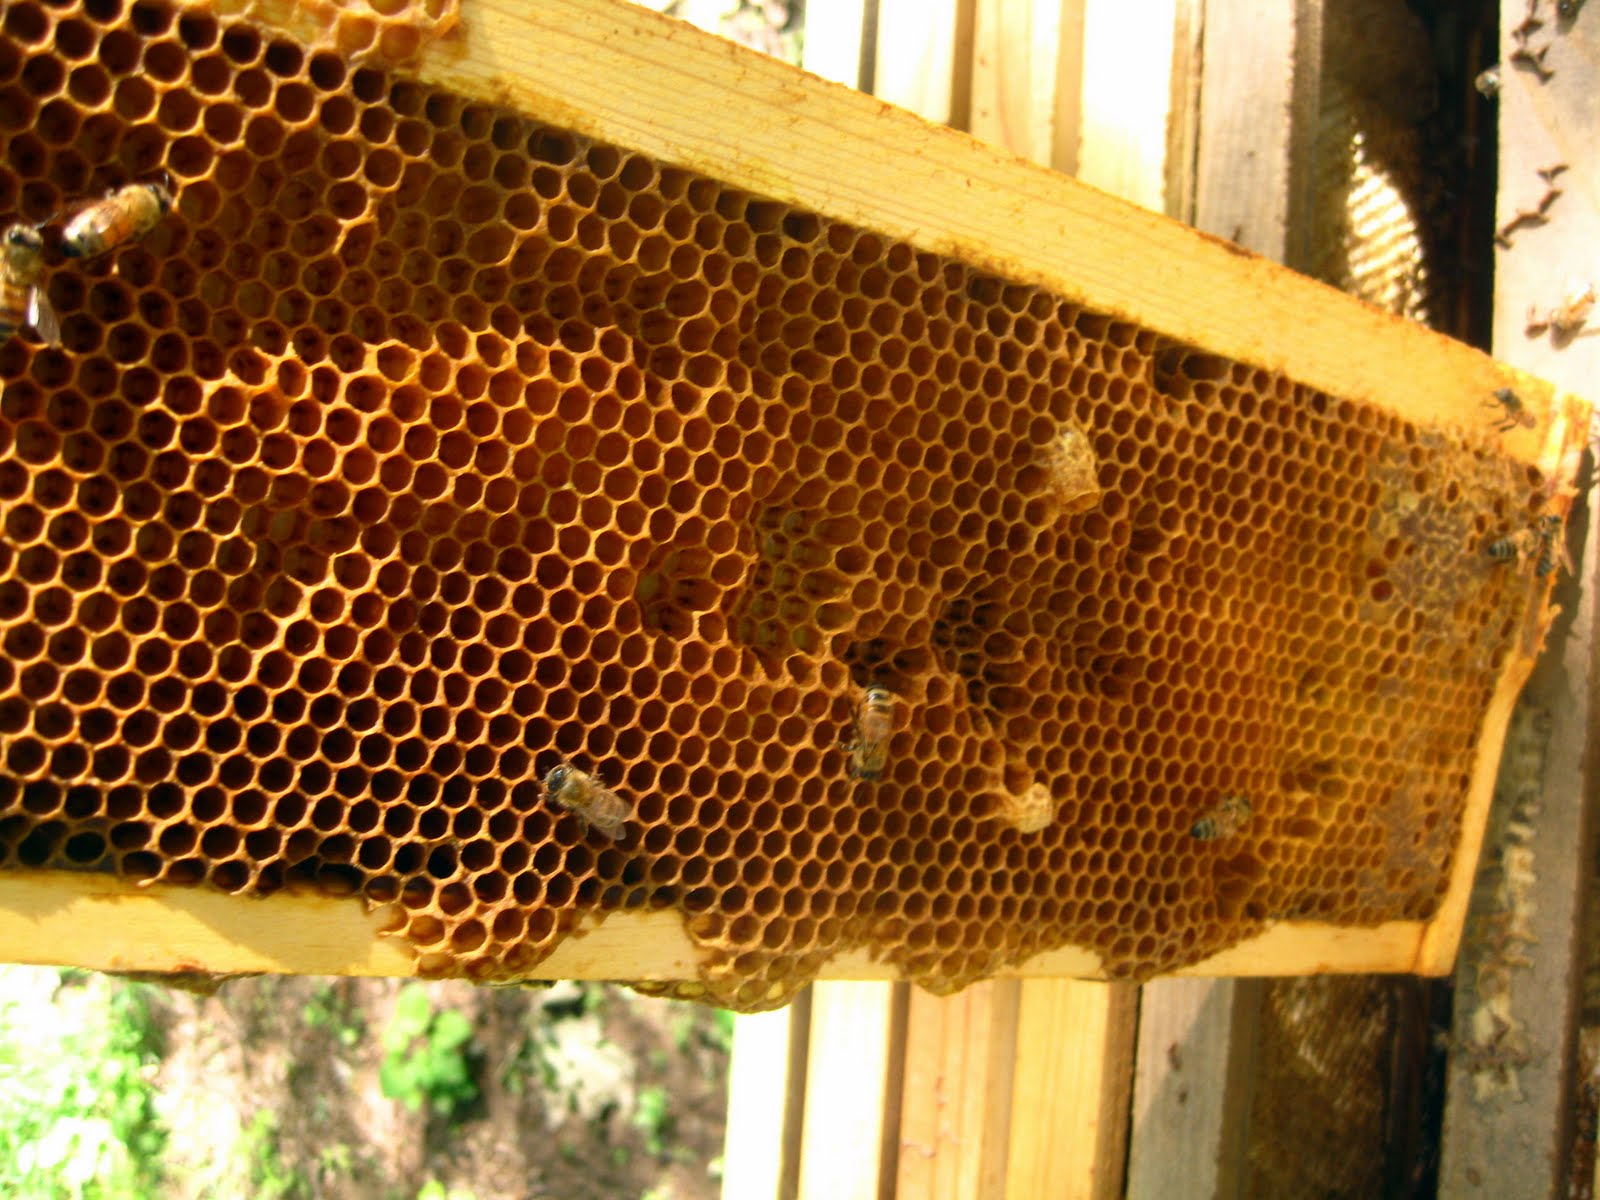 Bee Hive Placement Crate Proper Hive Spacing